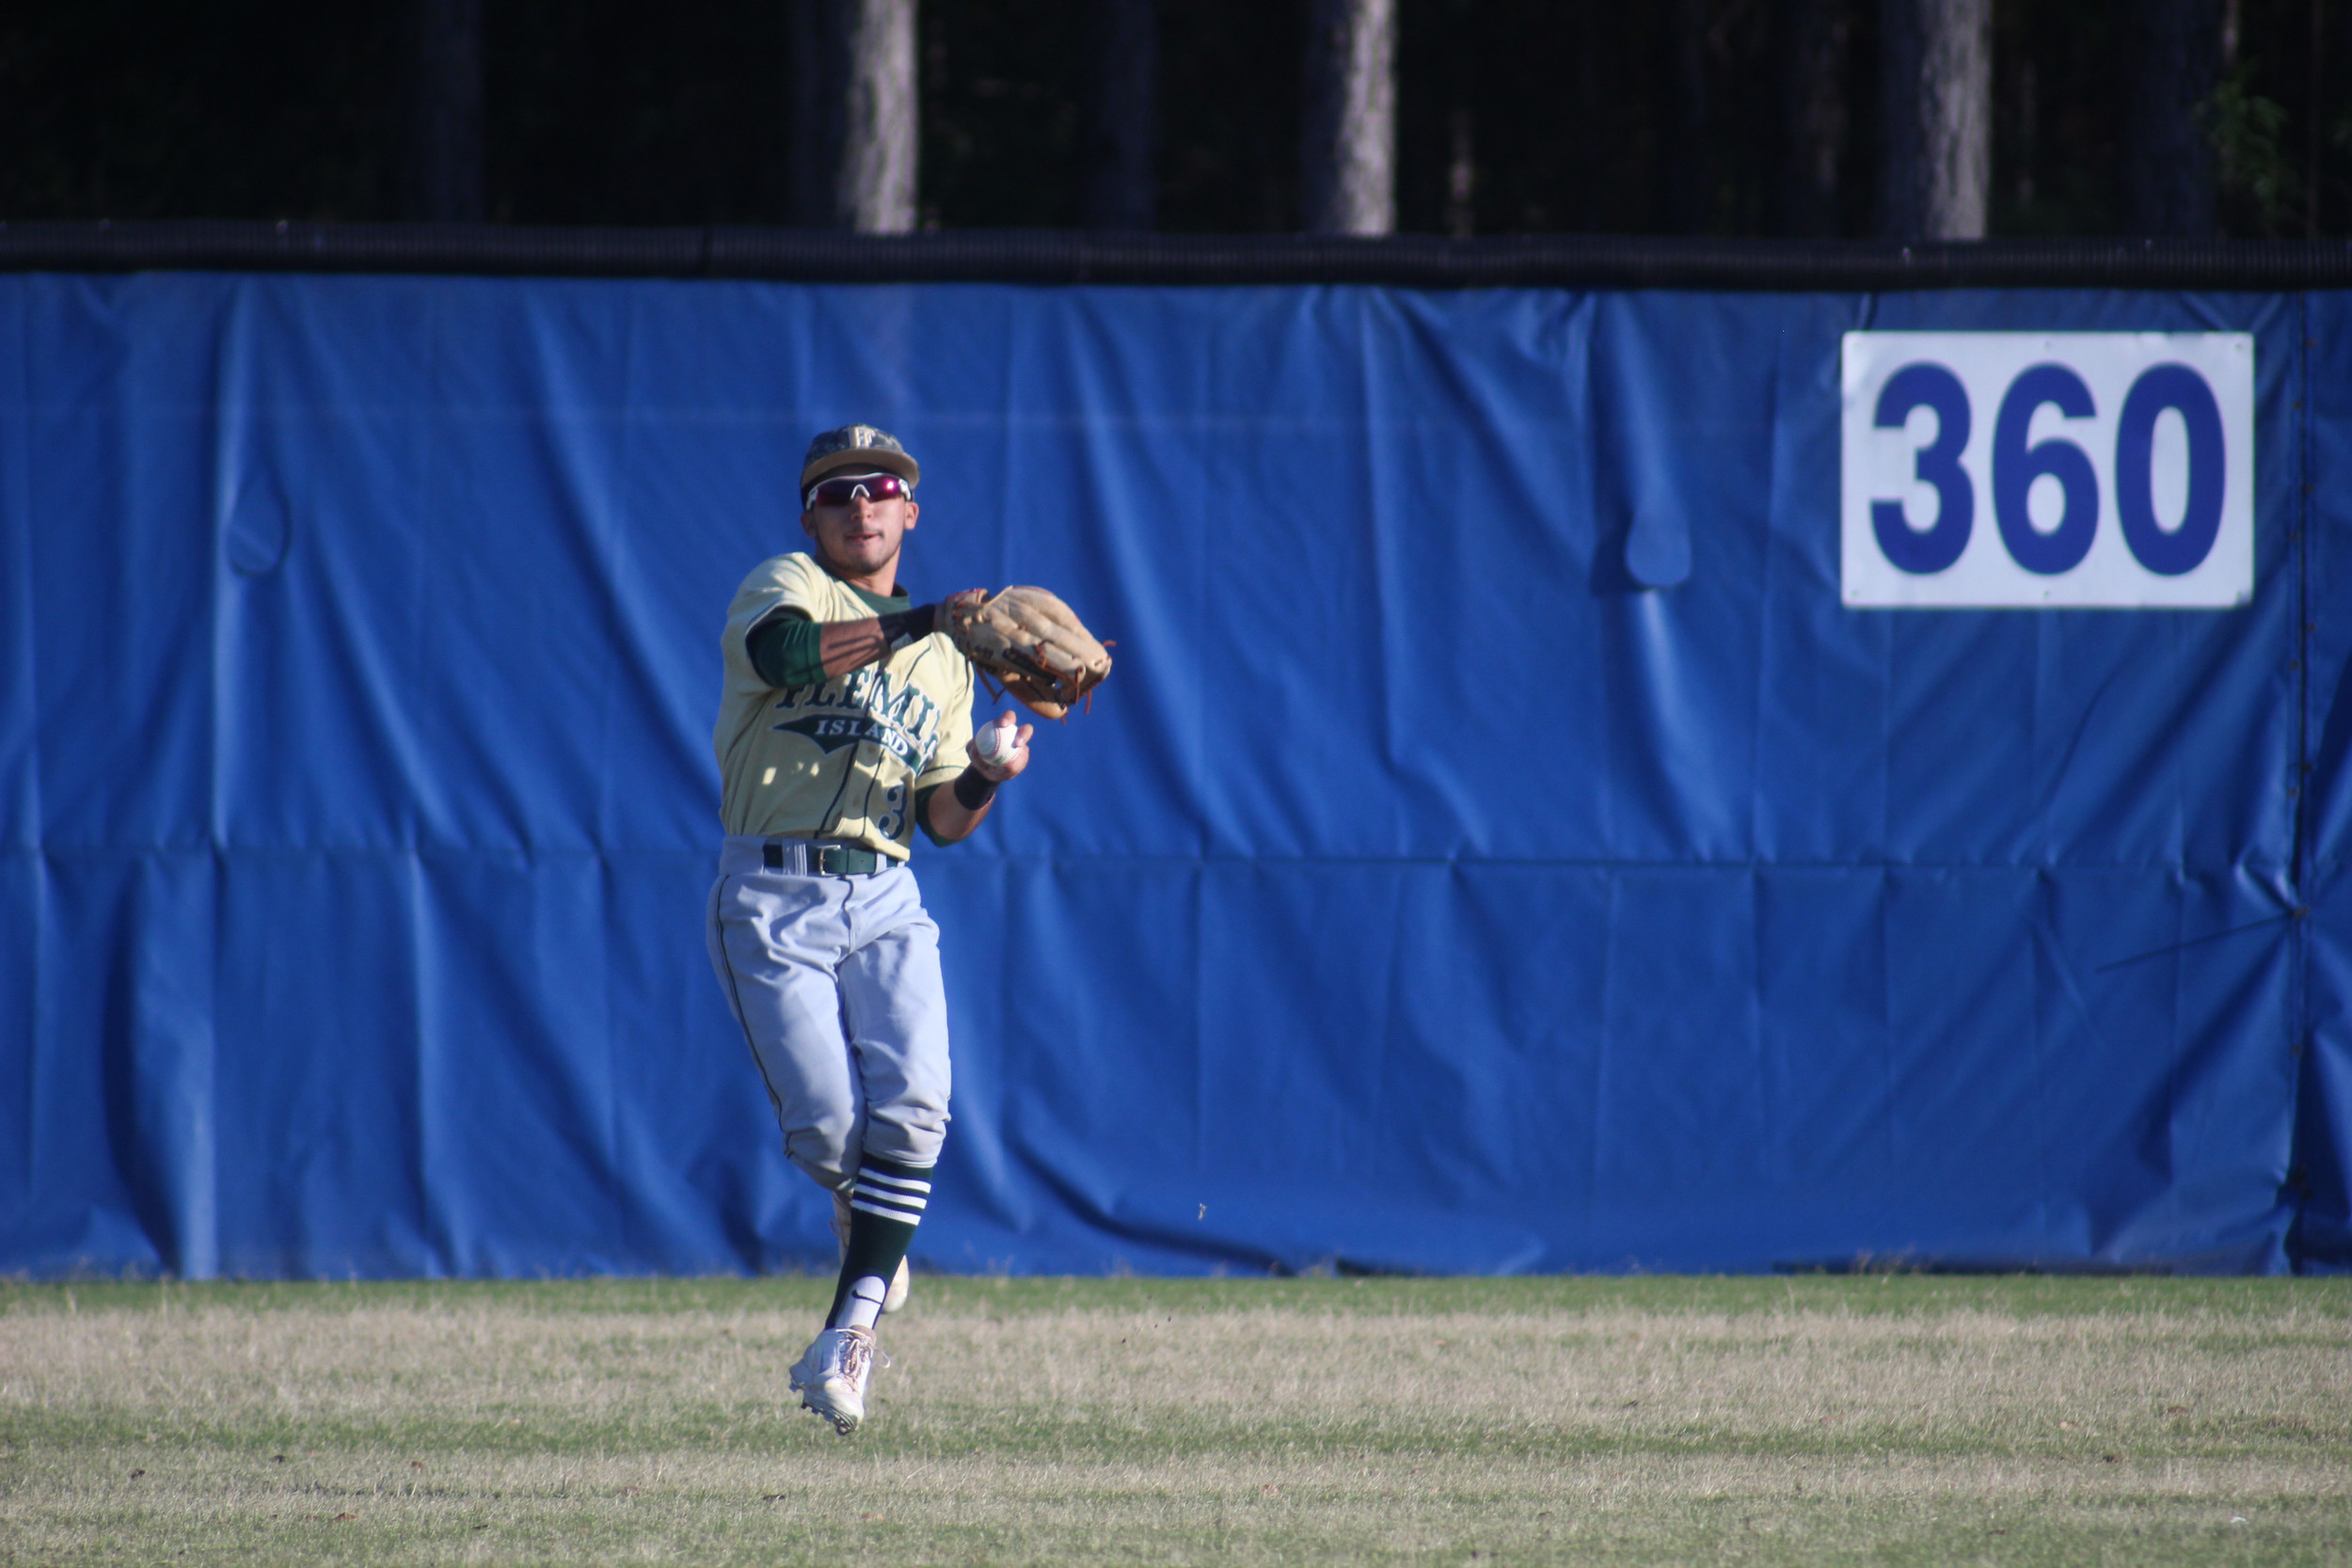 Fleming Island has speed in the outfield with fleet-footed Jordan Imperial, pictured, and Cory Solomon patrolling the long balls.